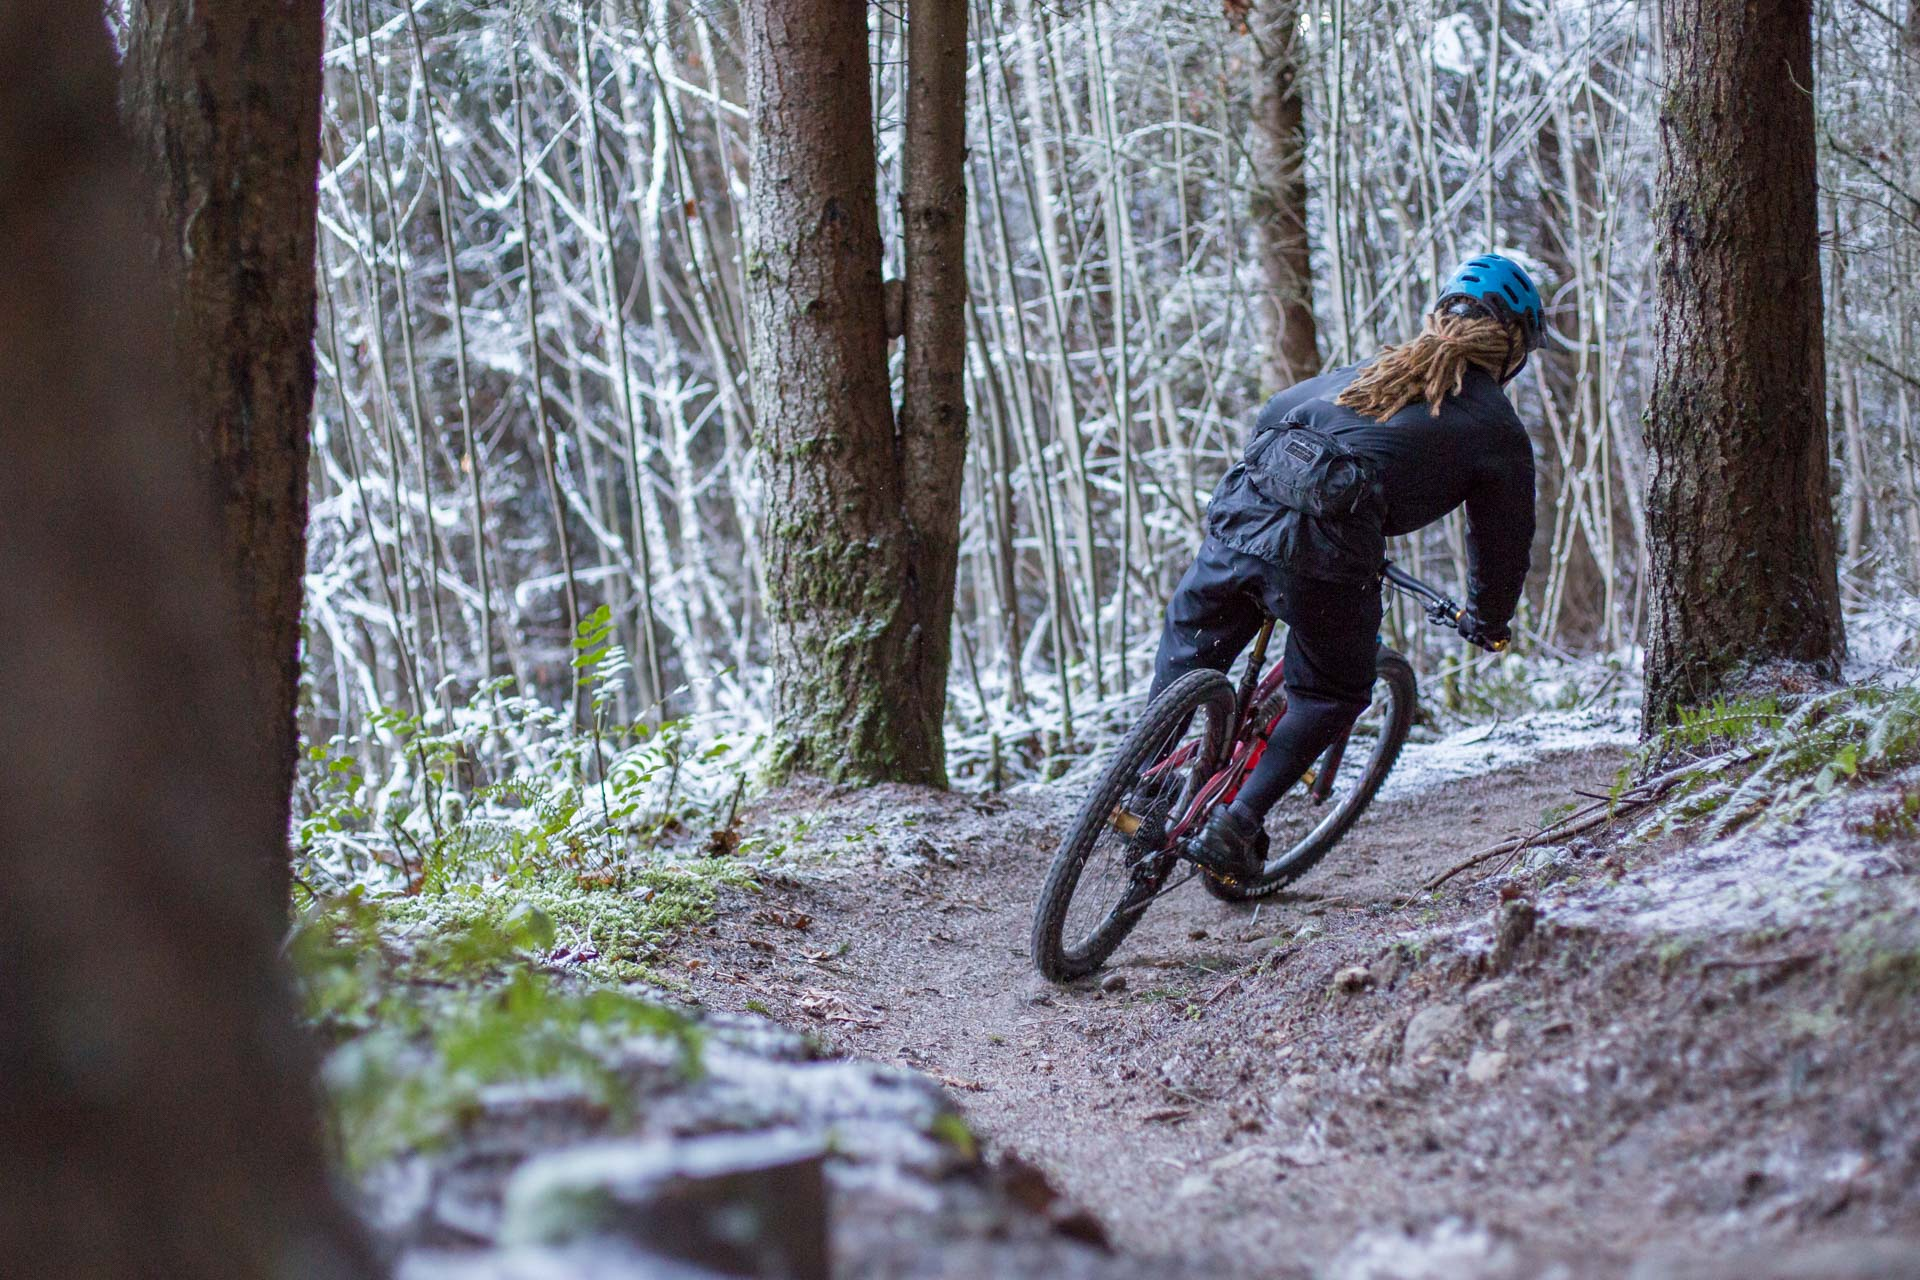 Cornering on the Fox Transfer equipped Santa Cruz Hightower